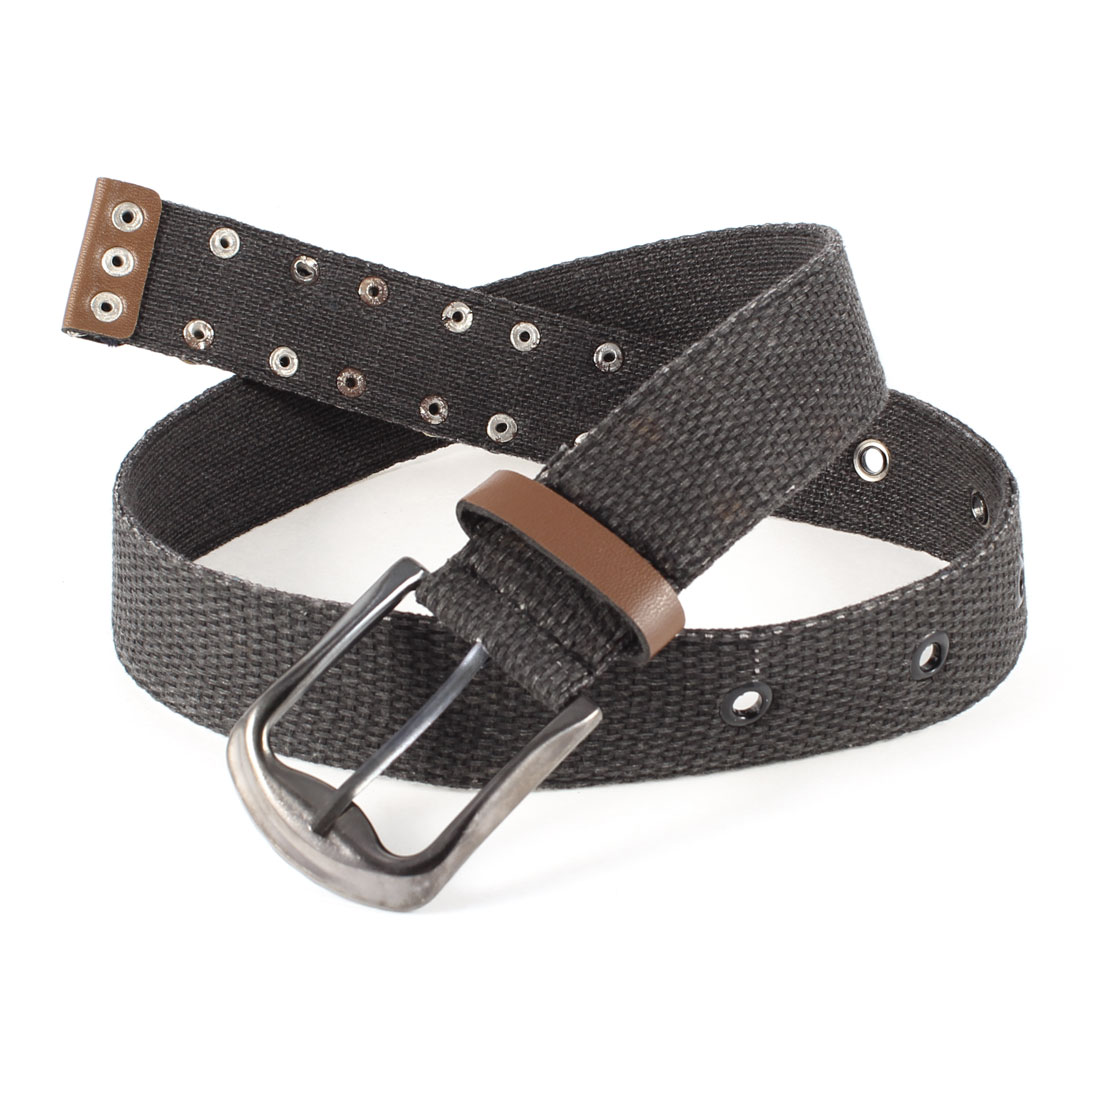 Unisex Textured Canvas Single Pin Buckle 4cm Width Jeans Belt Waist Band Coffee Color